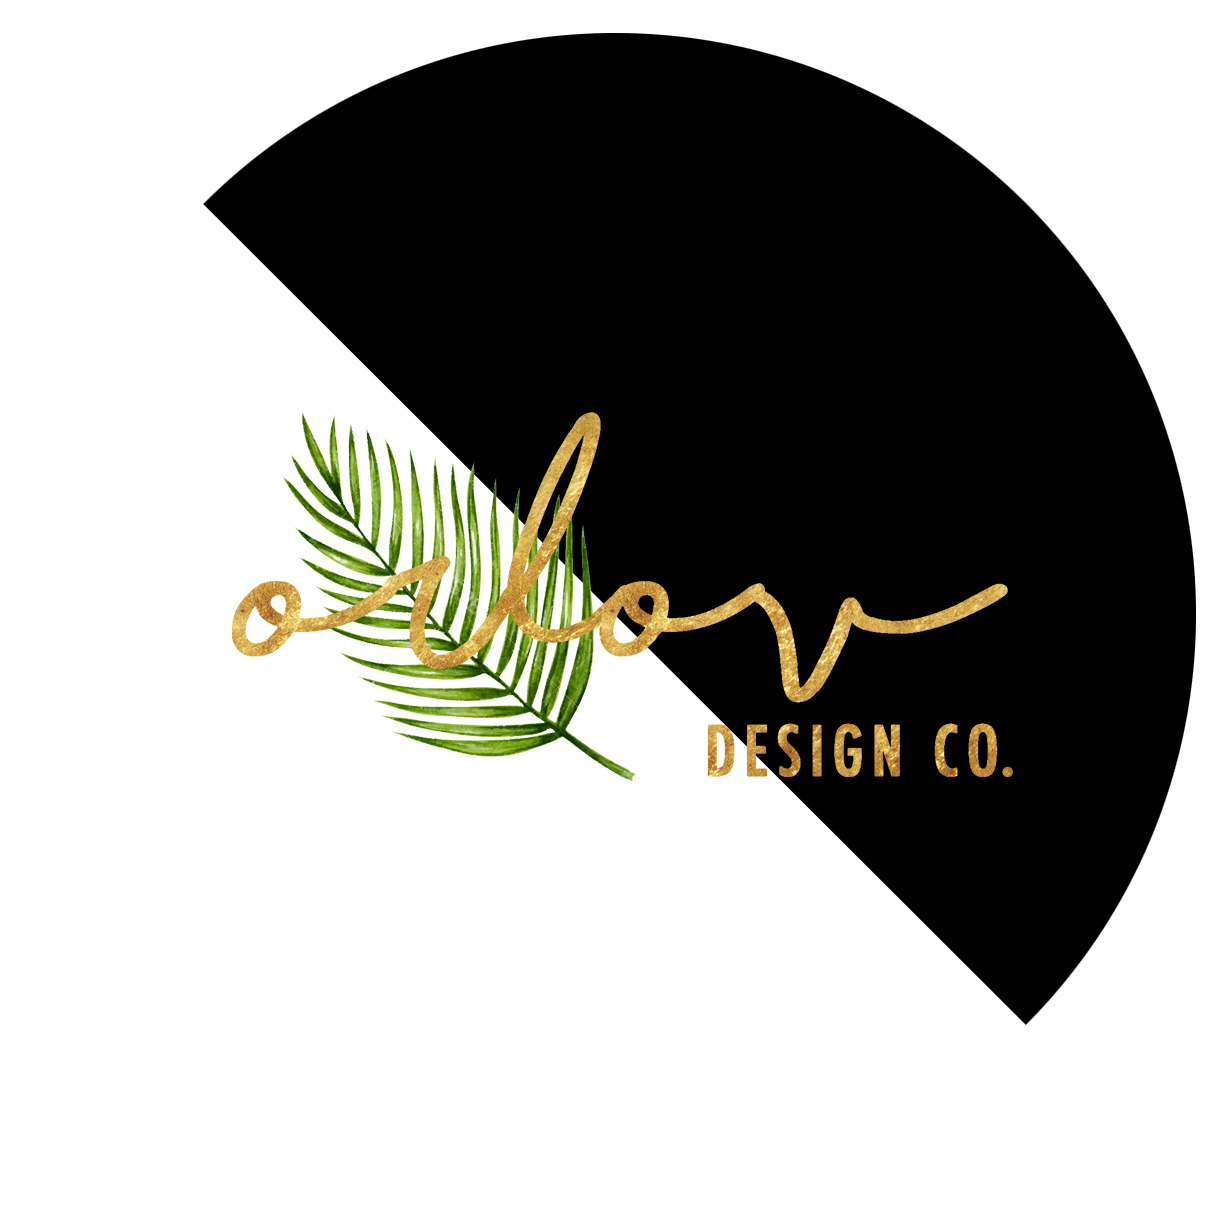 ORLOV DESIGN CO. | Las Vegas Interior Design By The Room • One Flat Fee